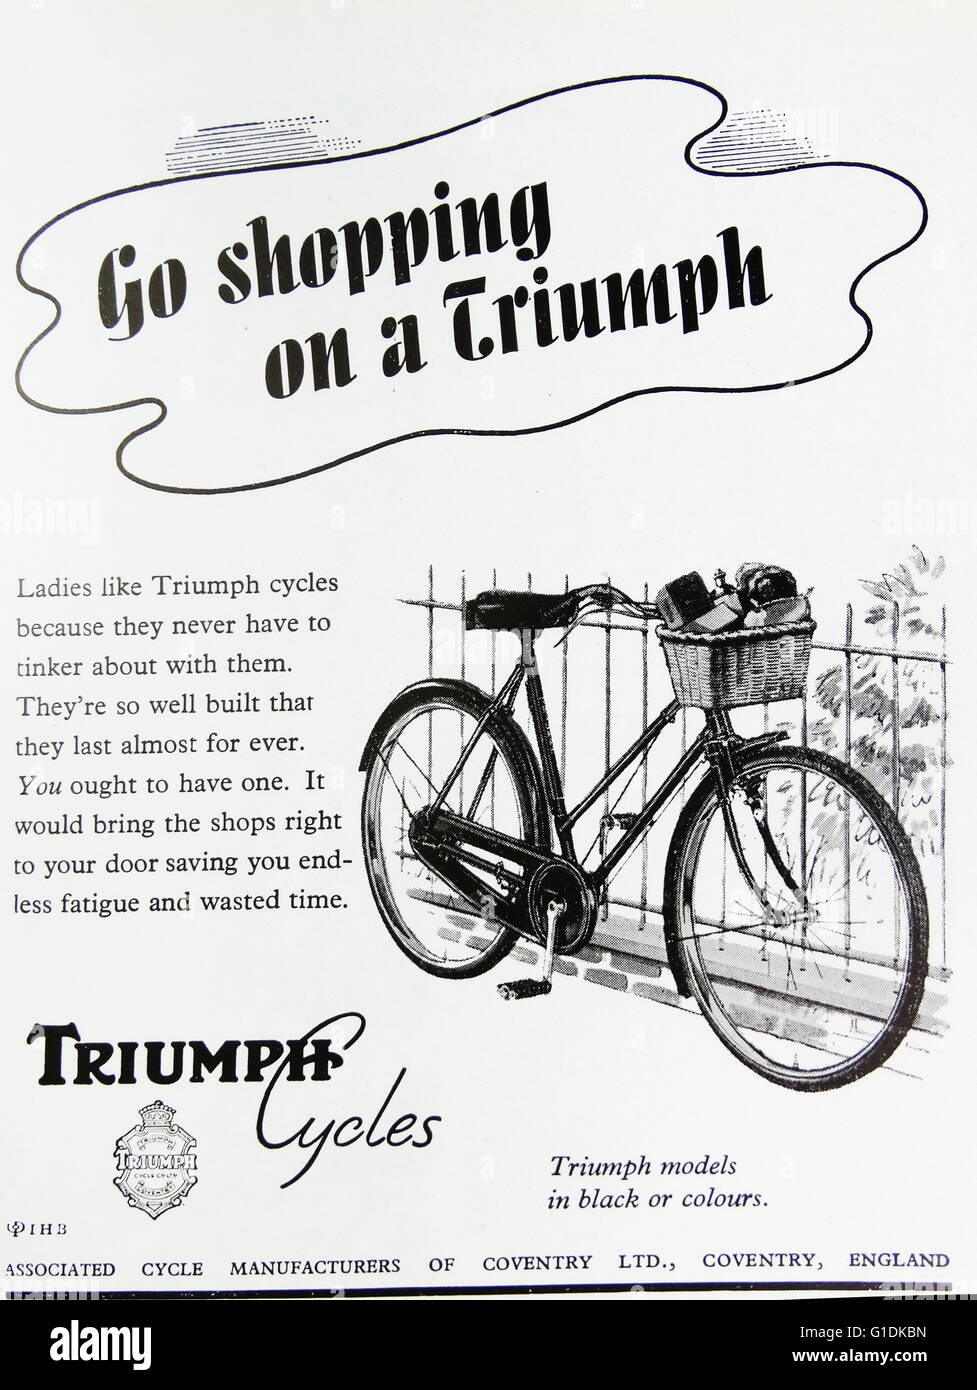 Advert for Triumph Cycles. Dated 20th Century - Stock Image